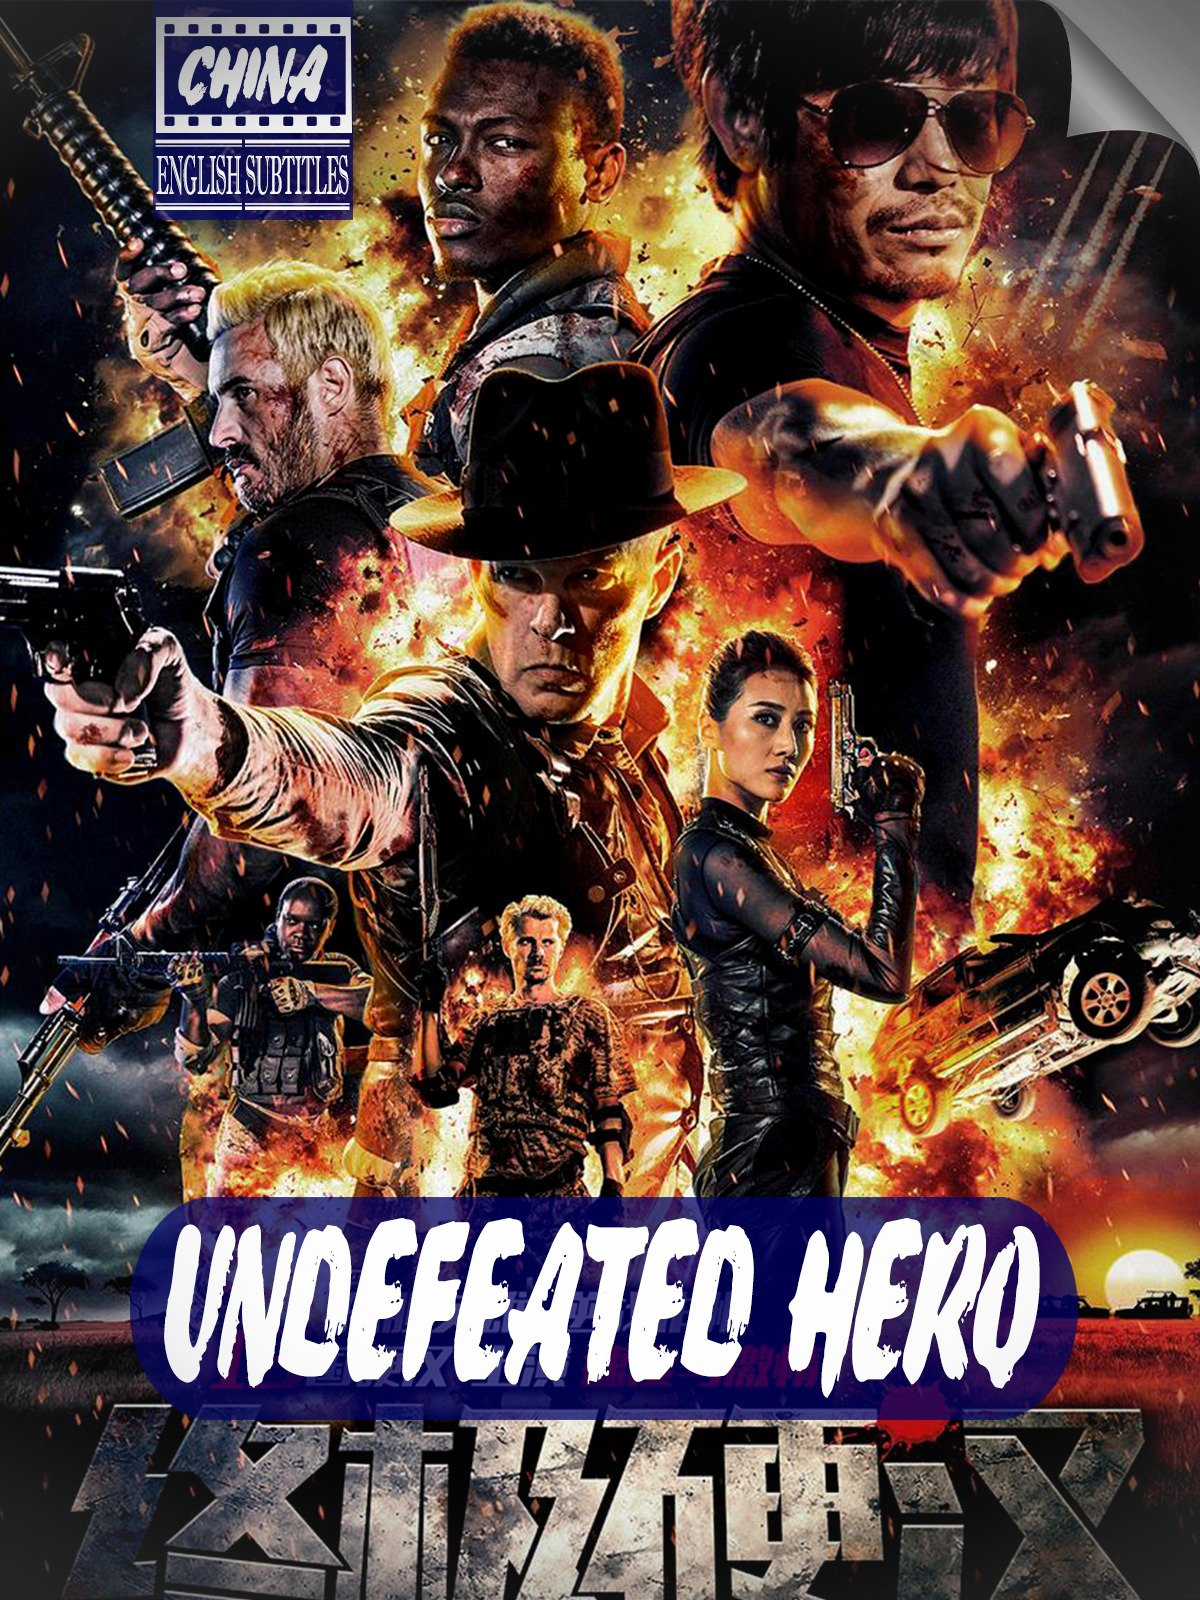 Undefeated Hero (english subtitles) China